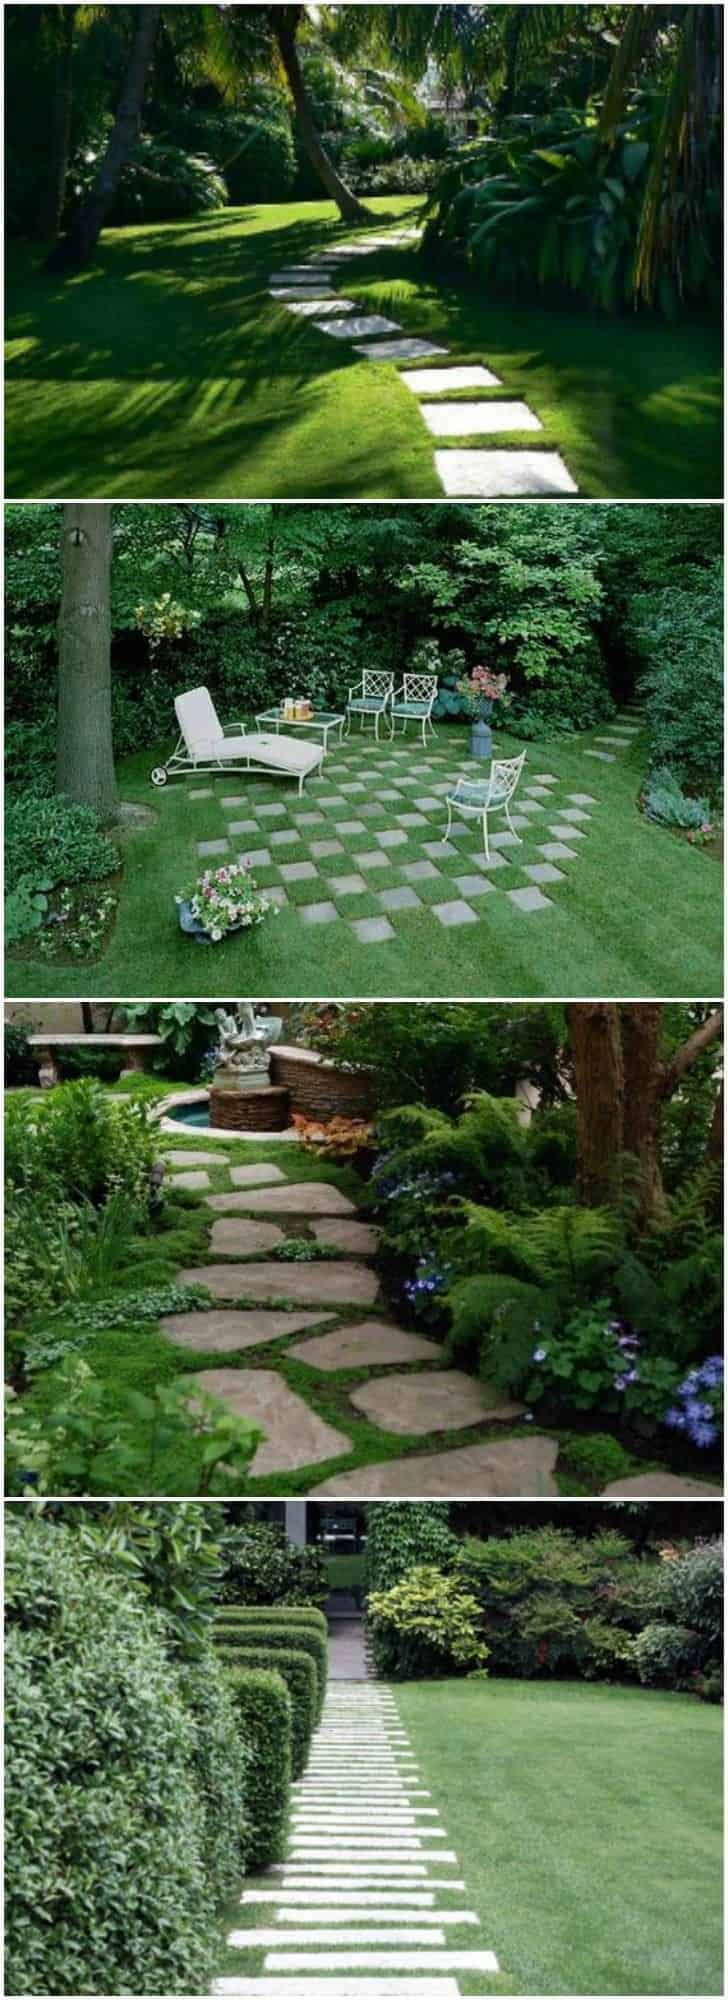 11 Lawn Landscaping Design Ideas, Anyone Can Make #11 ... on Landscape Design Ideas  id=36032